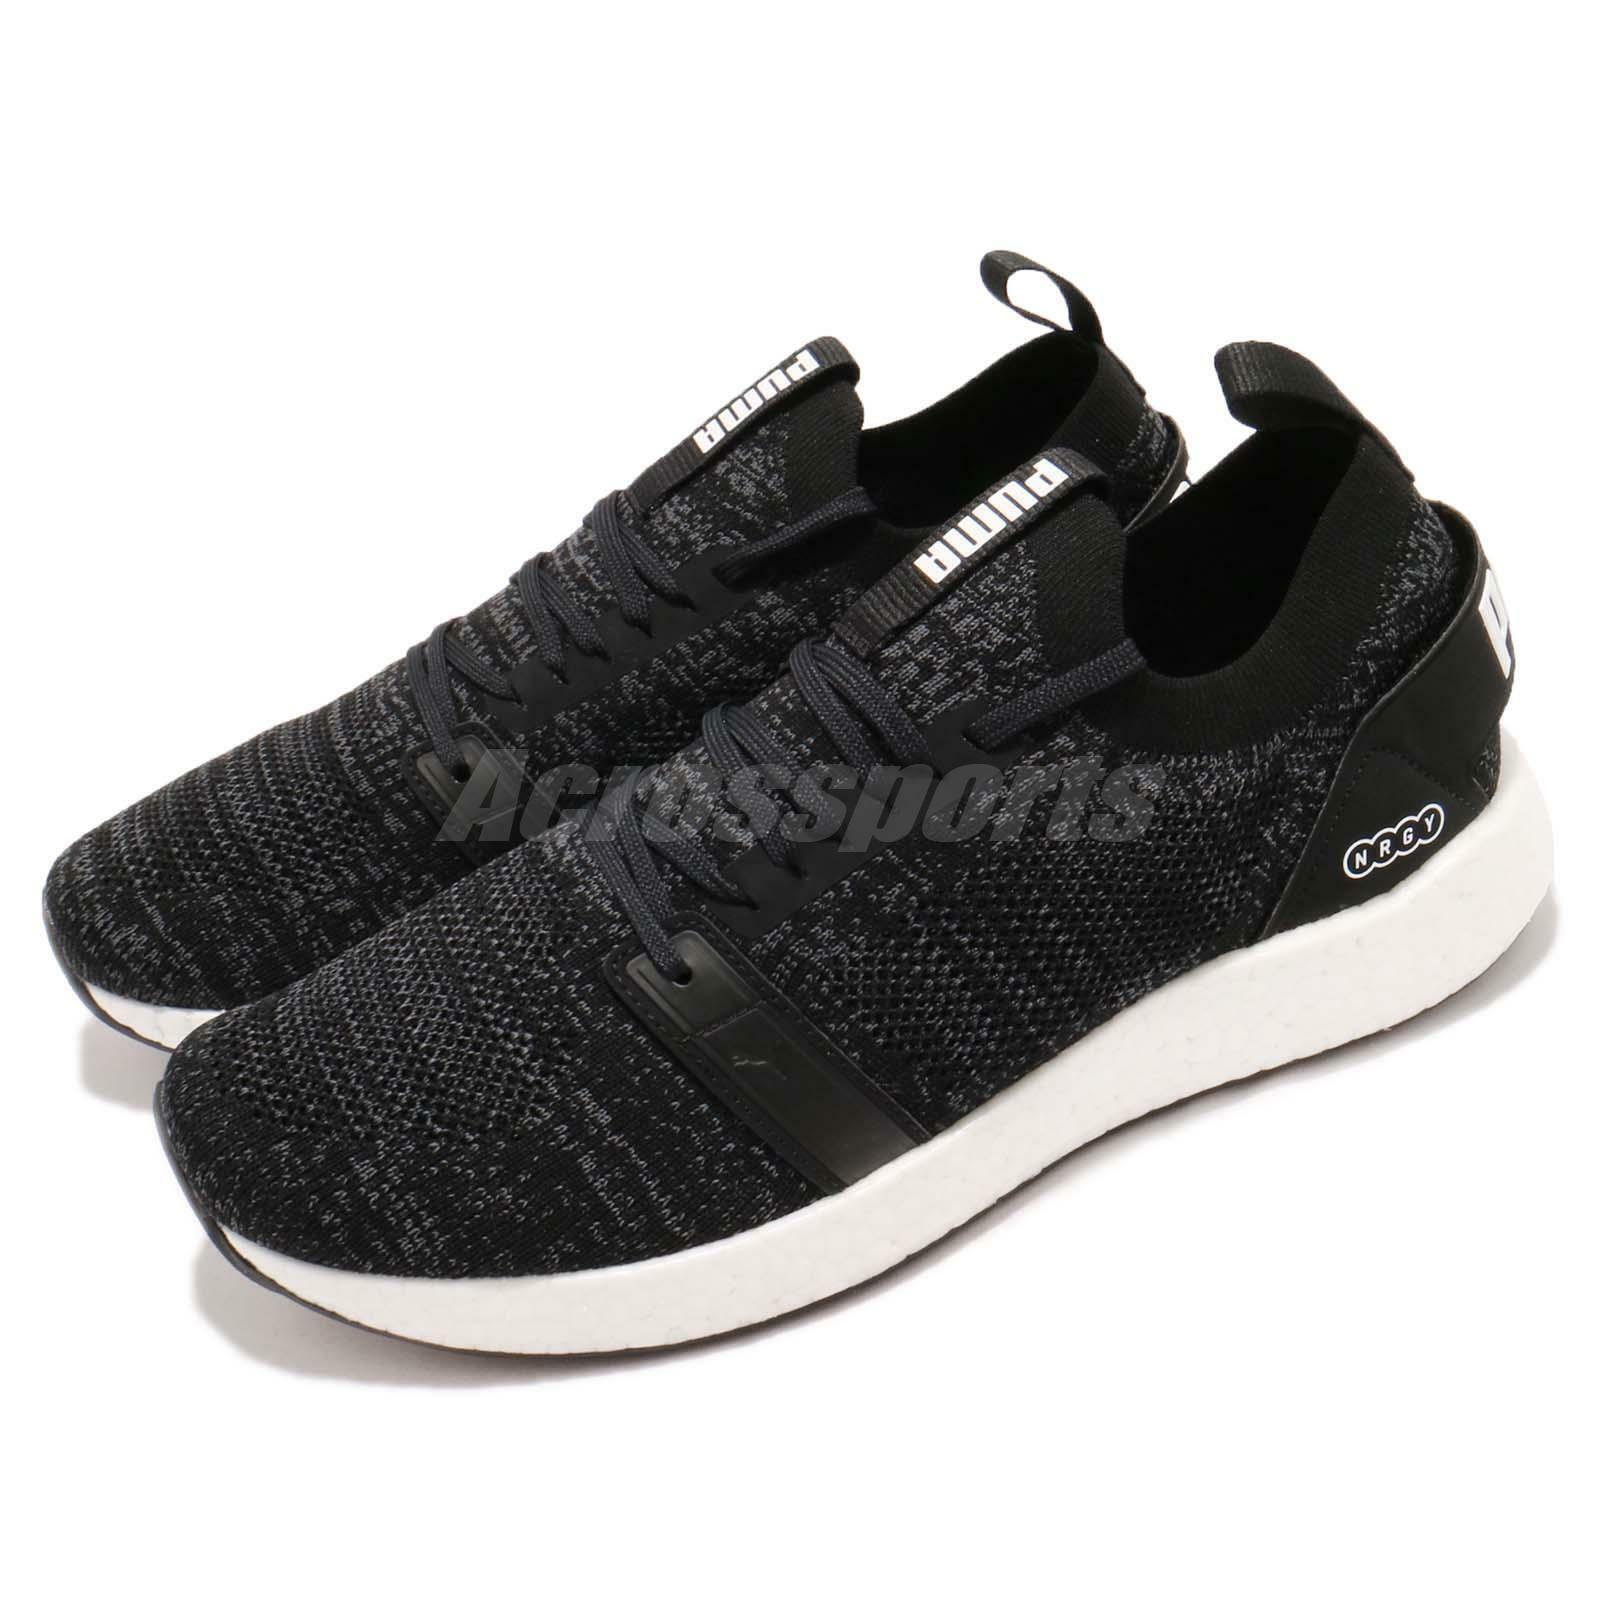 Puma NRGY Neko Engineer Knit Noir blanc Baskets  Hommes Running Chaussures Baskets blanc 191097-01 85fd05